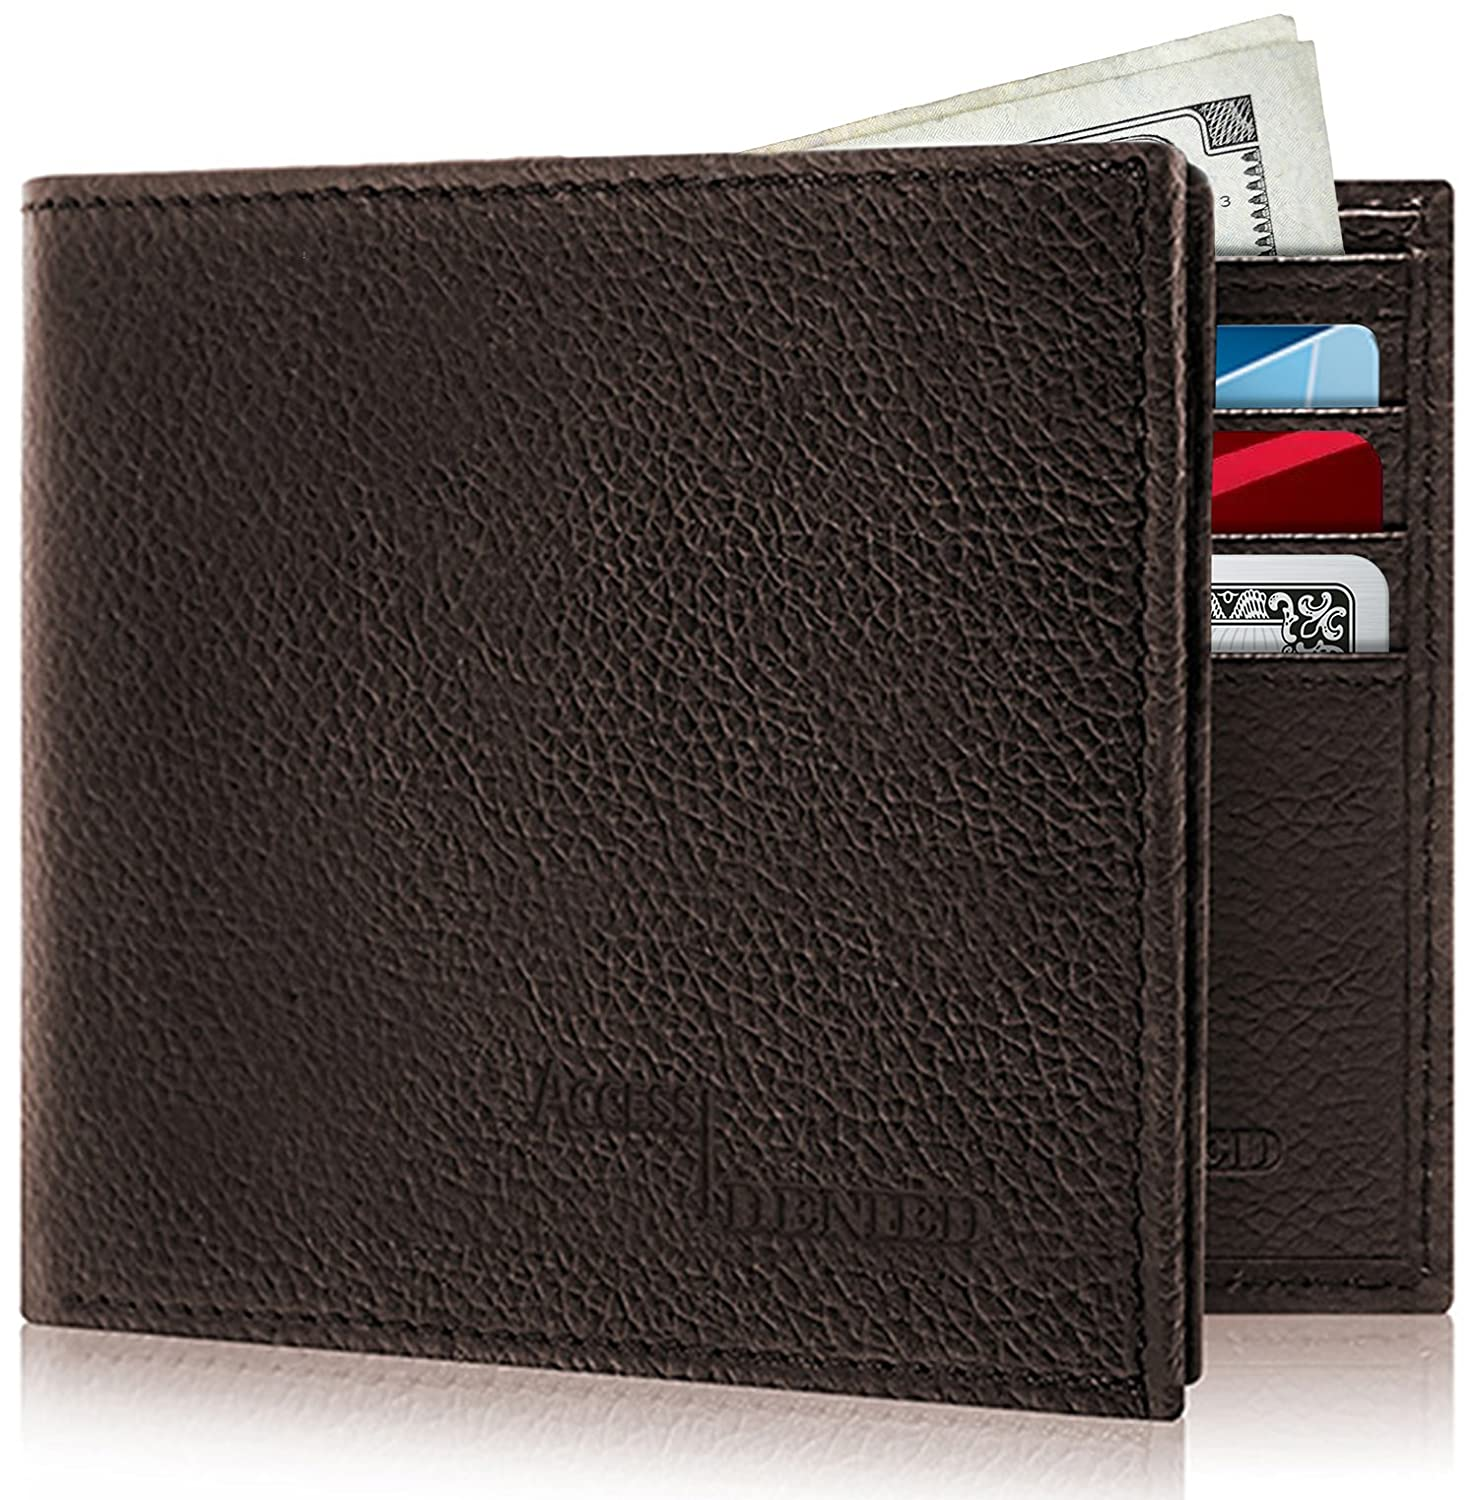 Slim Bifold Leather Wallets For Men - Front Pocket Mens Card Wallet Flip Up ID Window RFID With Gift Box For Him 1301-BLK-CROCO